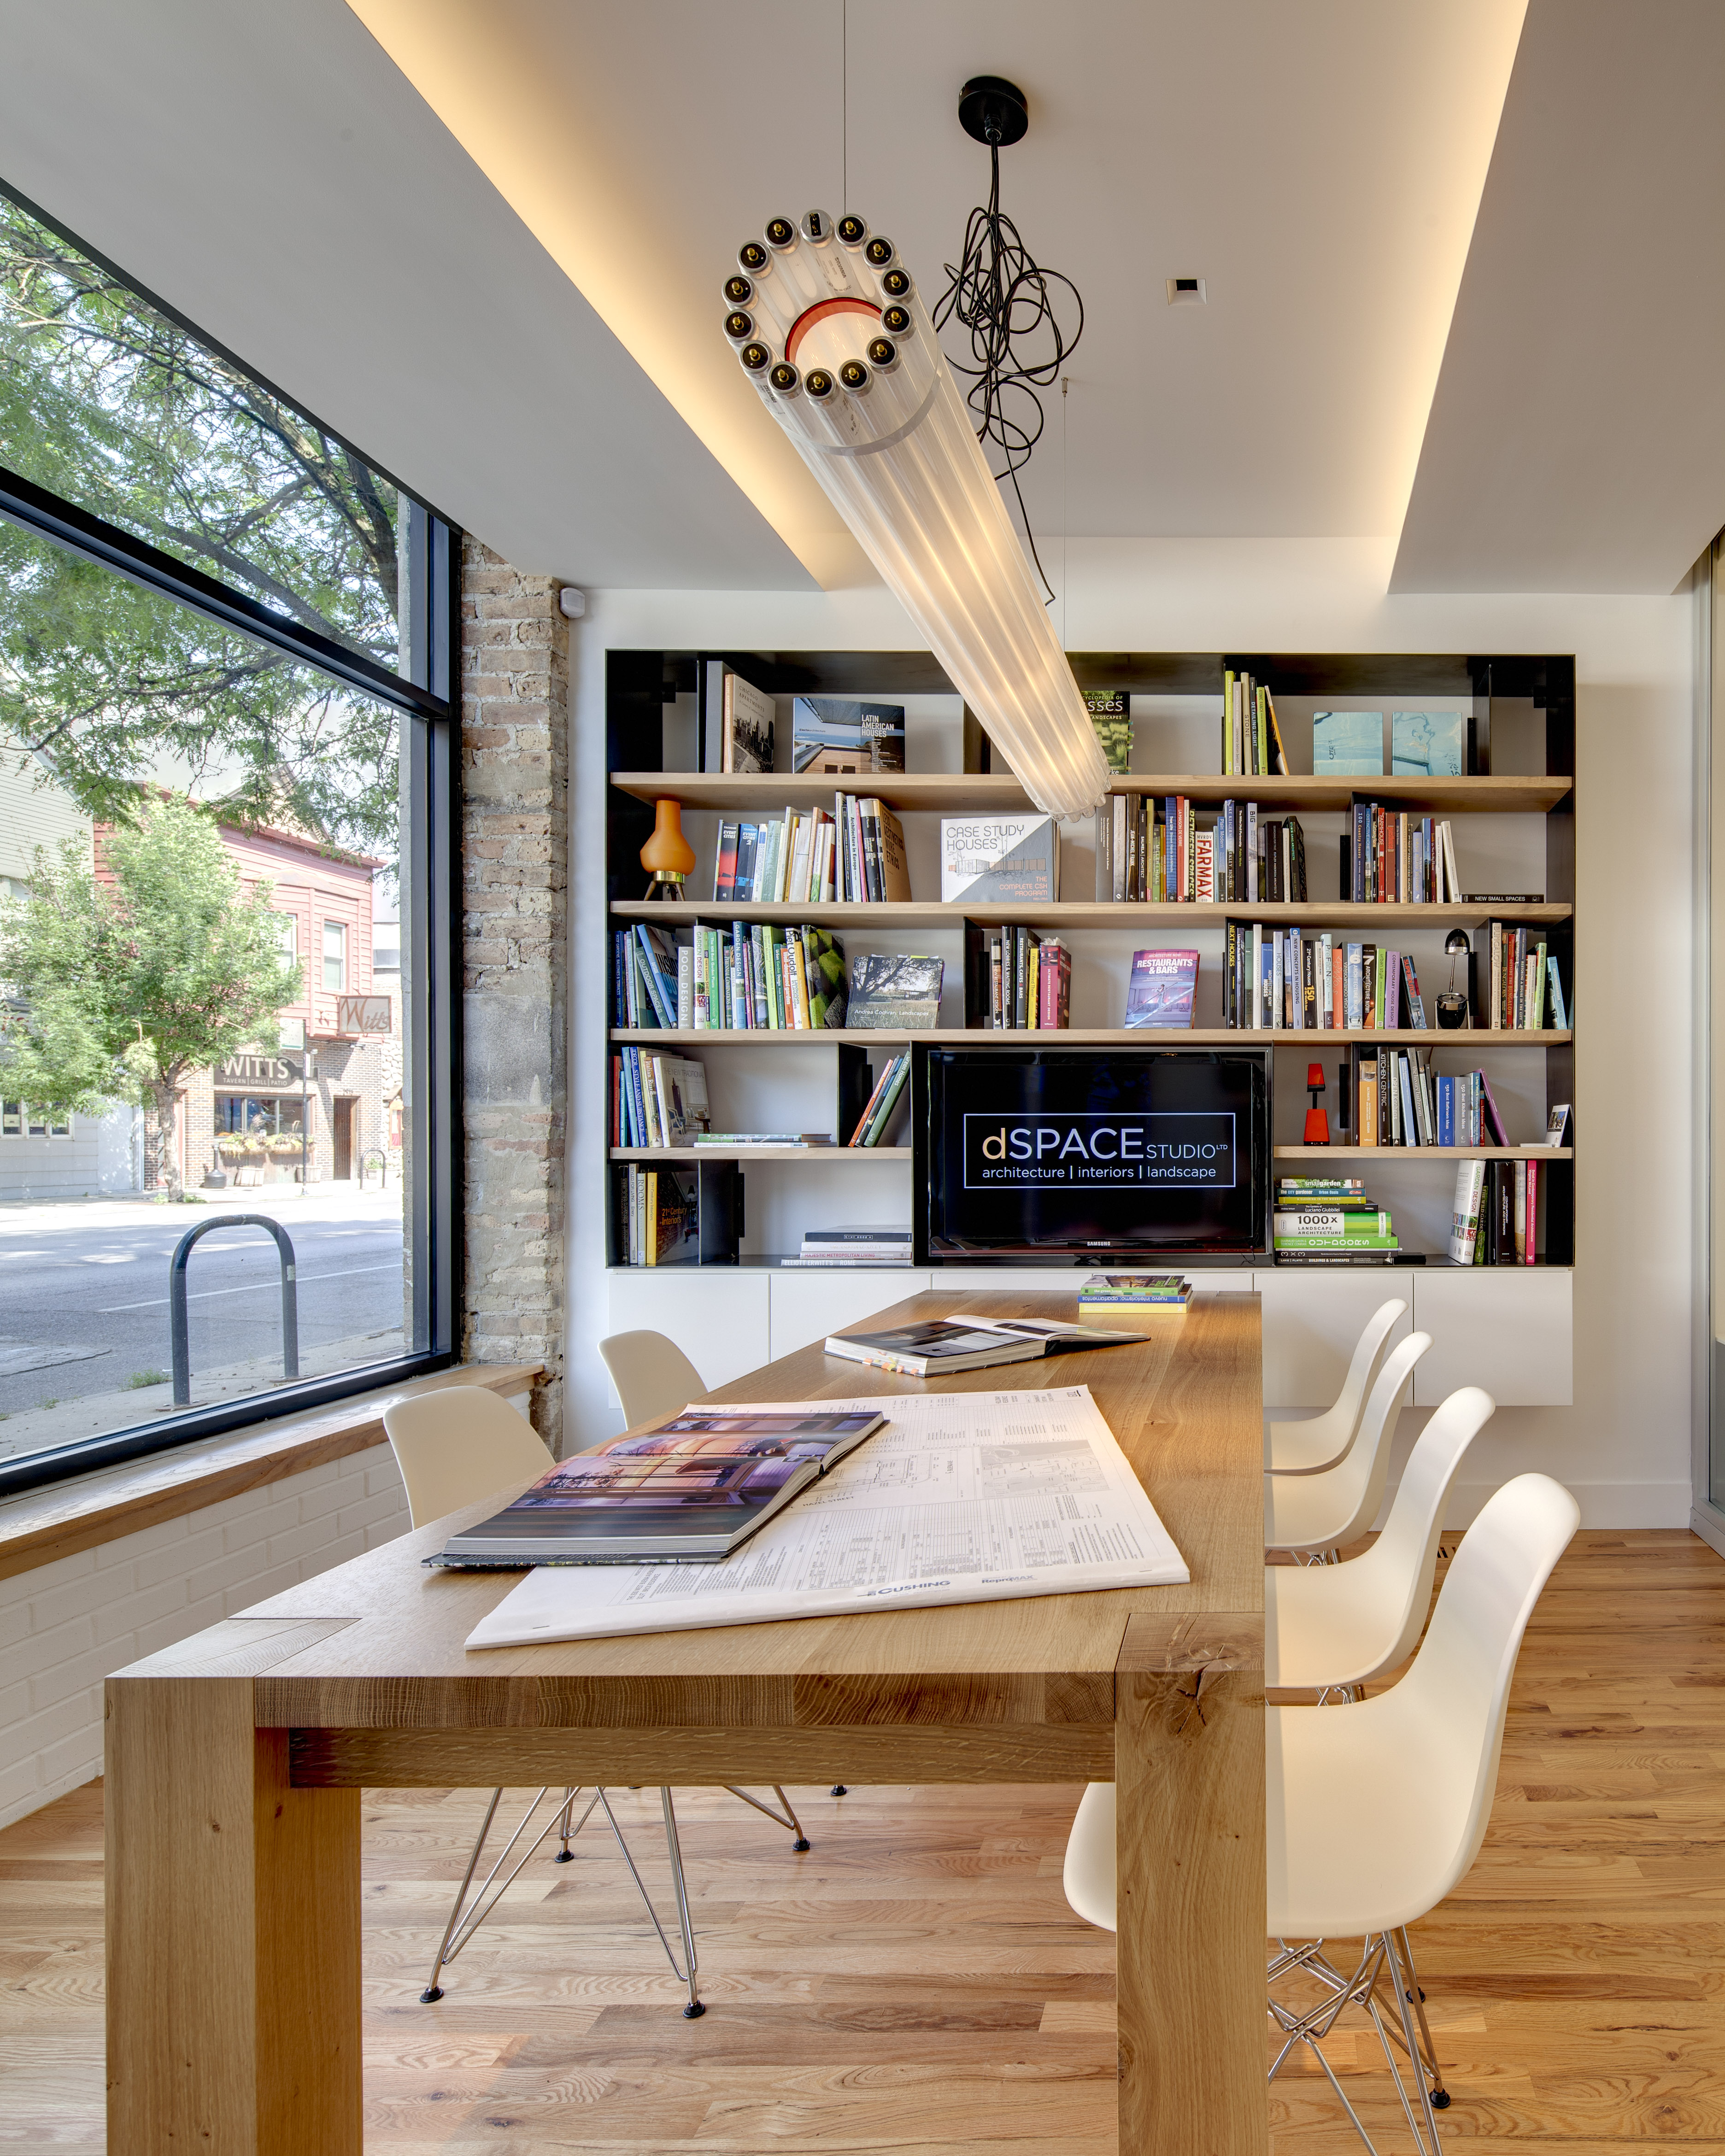 CONTEMPORARY OFFICE INTERIOR dSPACE Studio Archinect